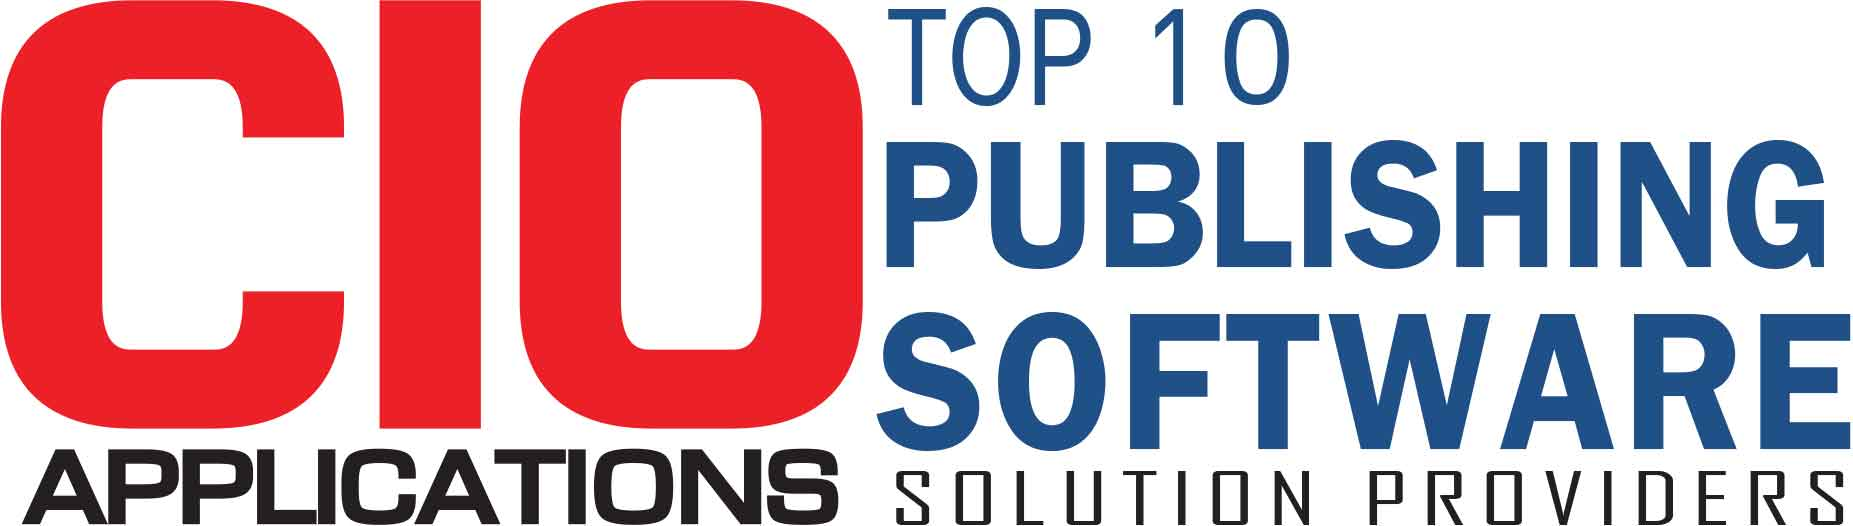 Top Publishing Software Solution Companies